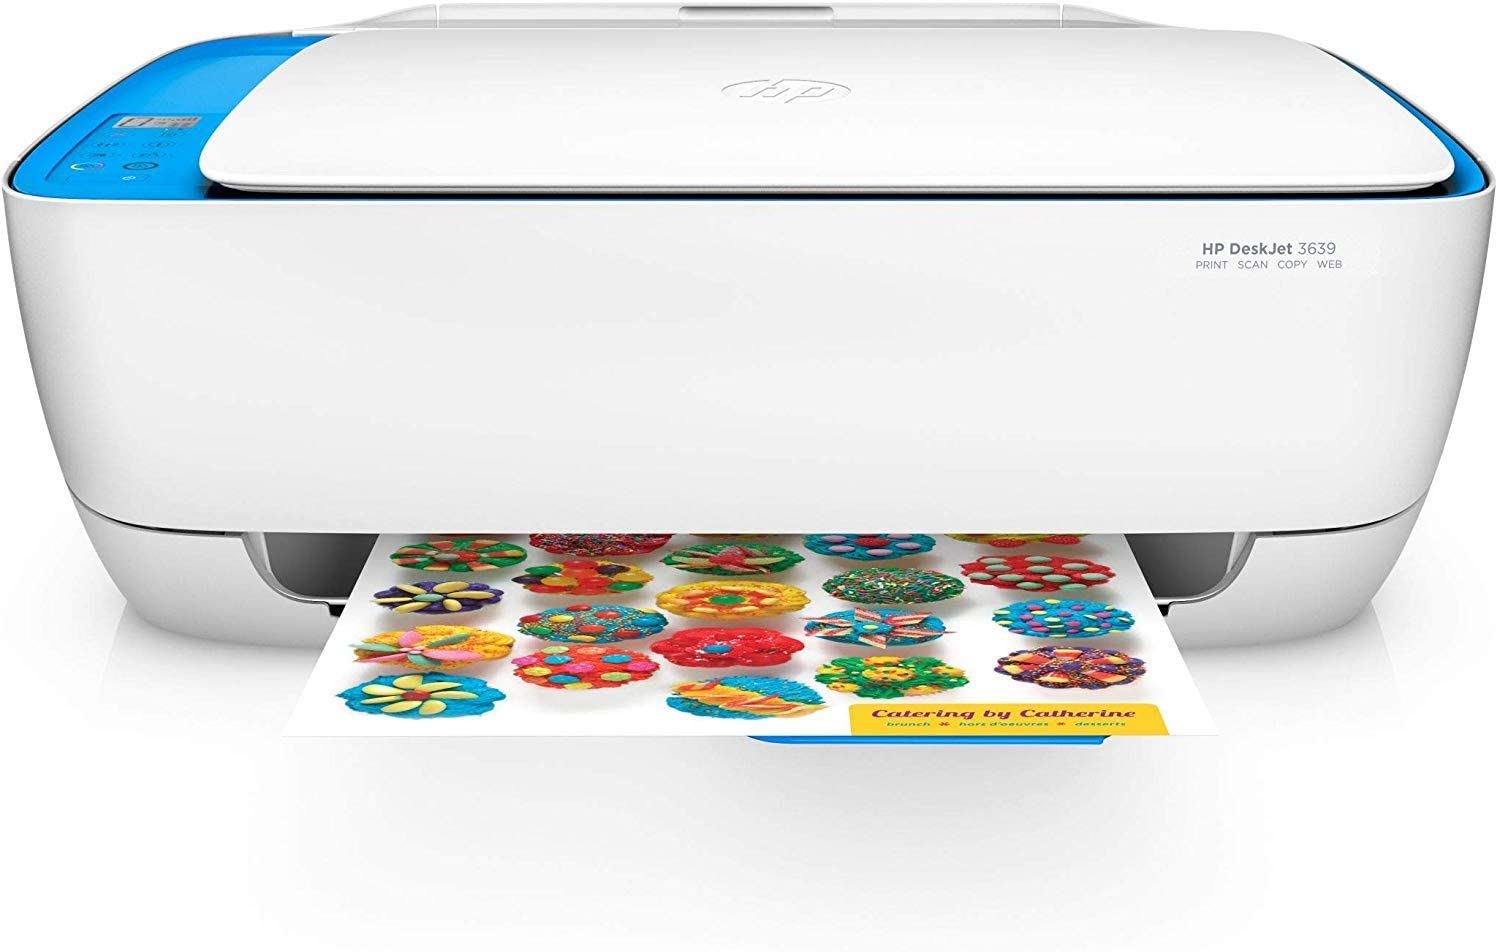 HP DeskJet 3639 Multifunction Printer (Instant Ink, Printer, Scanner, Copier, WLAN, Airprint) with 2 Sample Hours HP Instant Ink included uk reviews